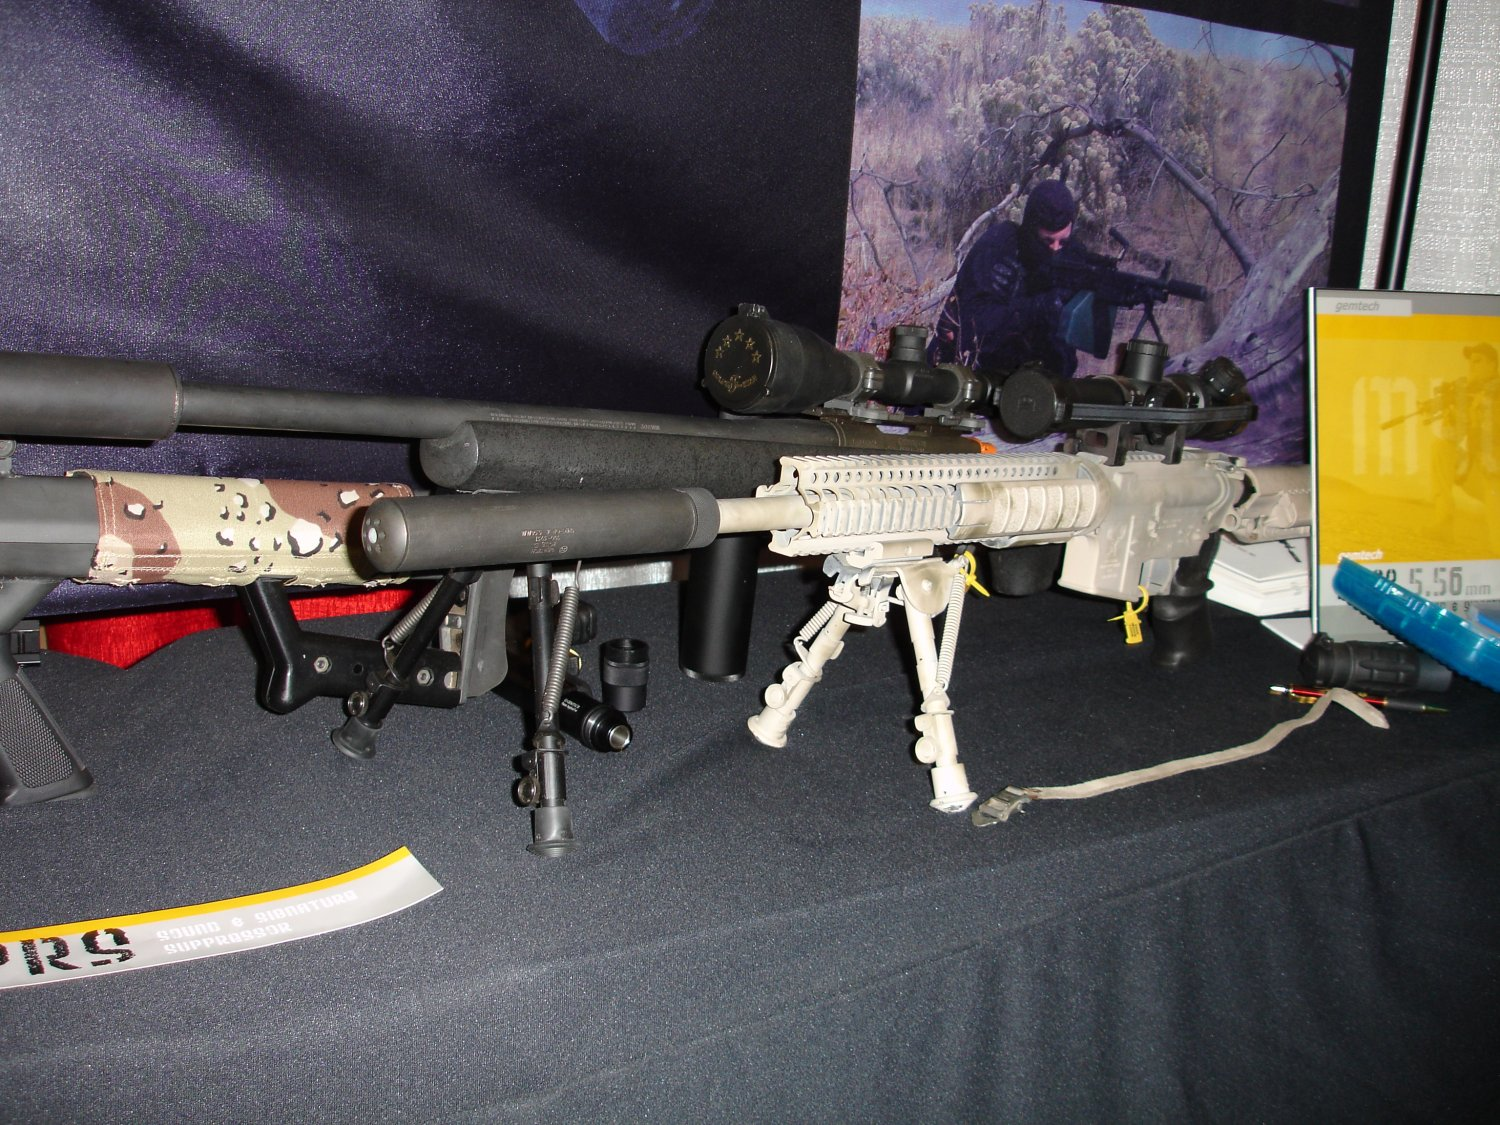 Gemtech 5 <!  :en  >SHOT Show Pics: Gemtech Sound and Signature Suppressors for Tactical Small Arms<!  :  >